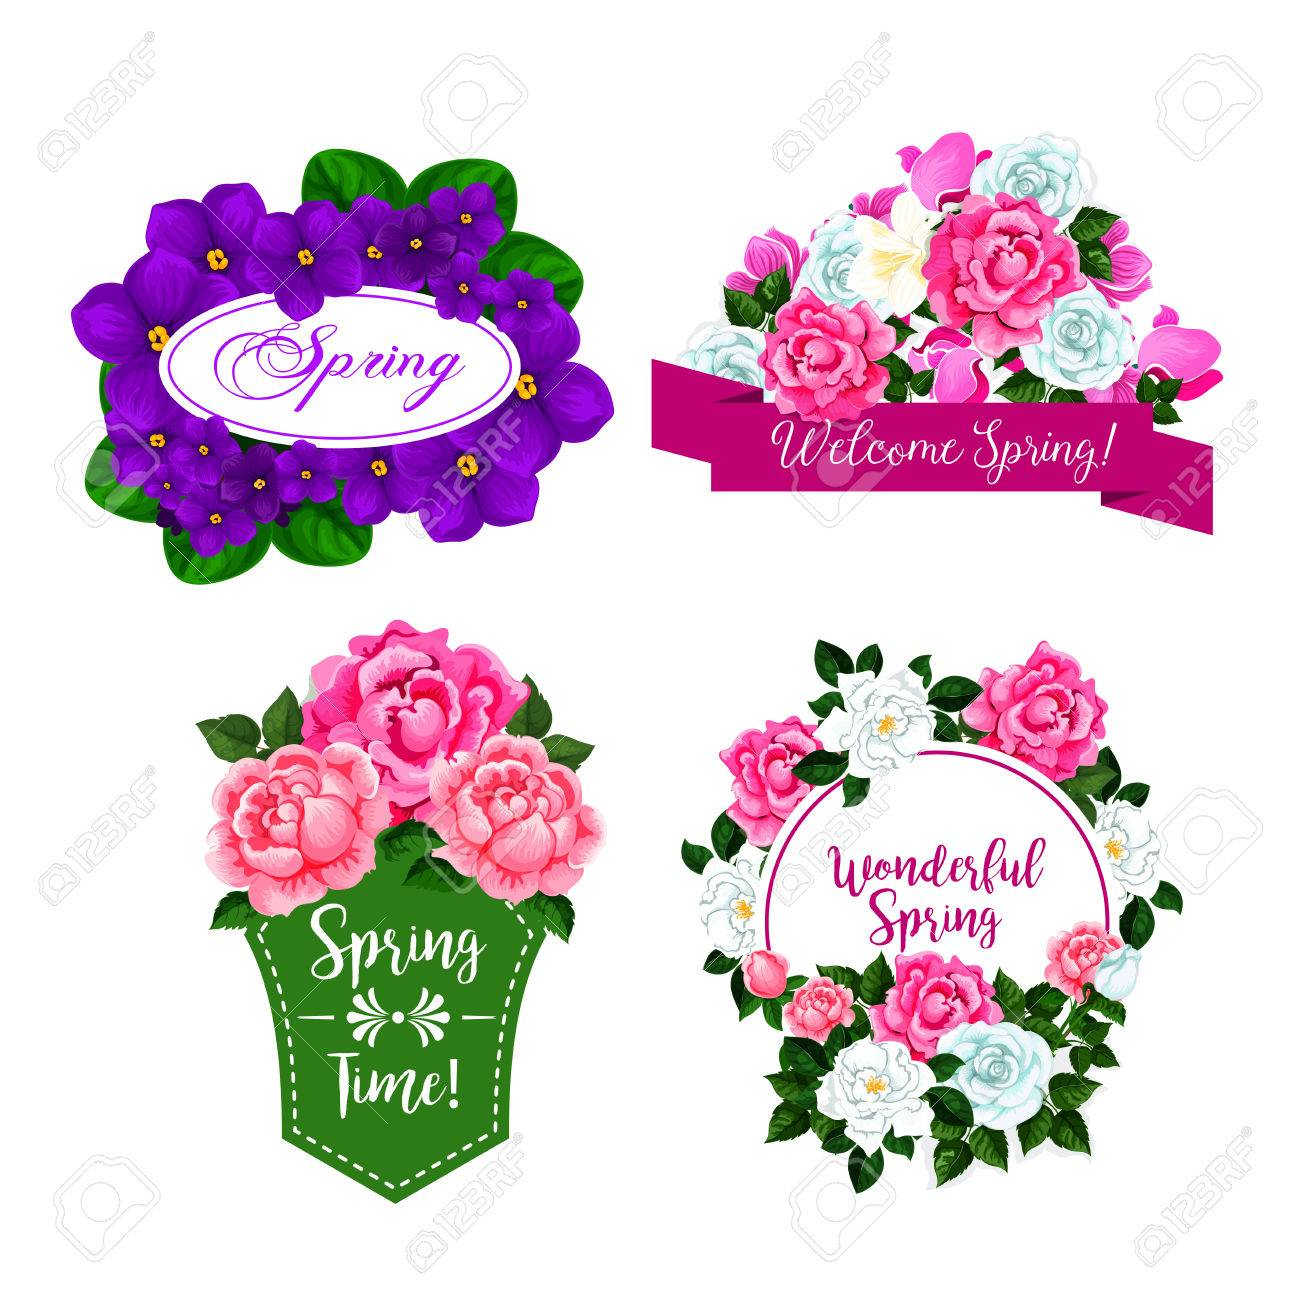 Vector Flowers Bouquets For Spring Greeting Quotes Royalty Free ...